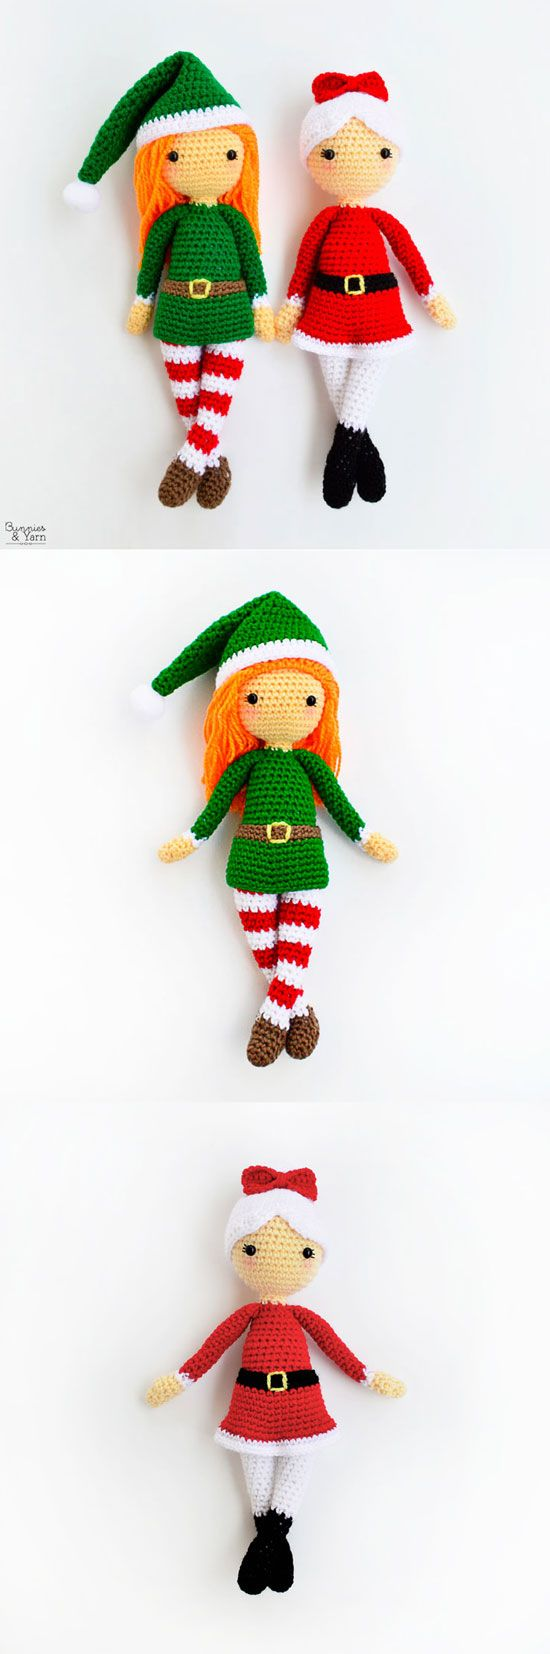 Crochet Patterns - Edna the Elf Doll and Mrs. Claus - Amigurumi